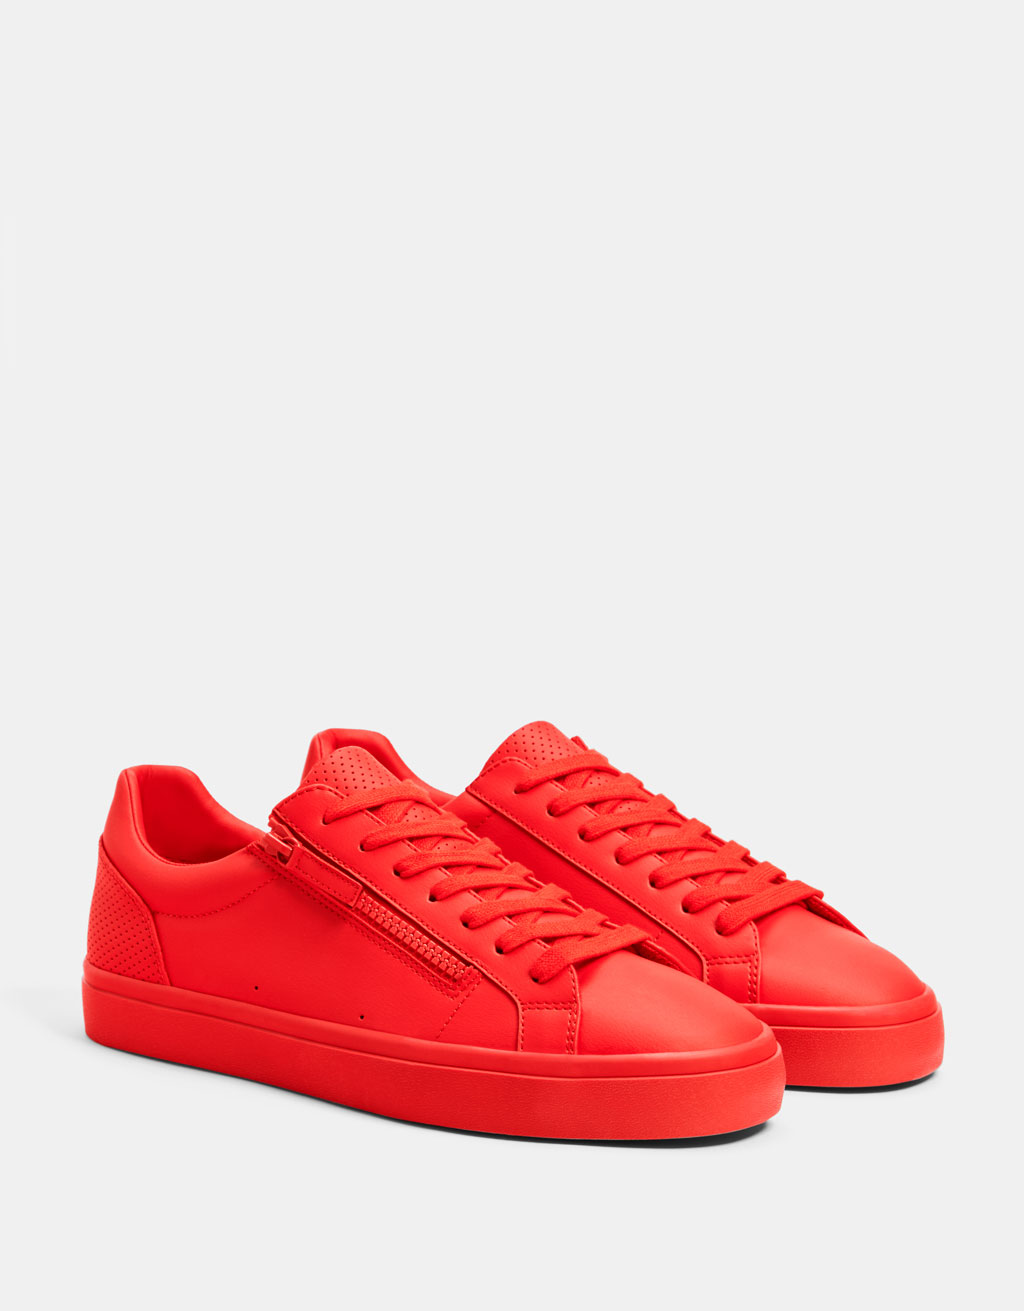 Men's red sneakers with zip